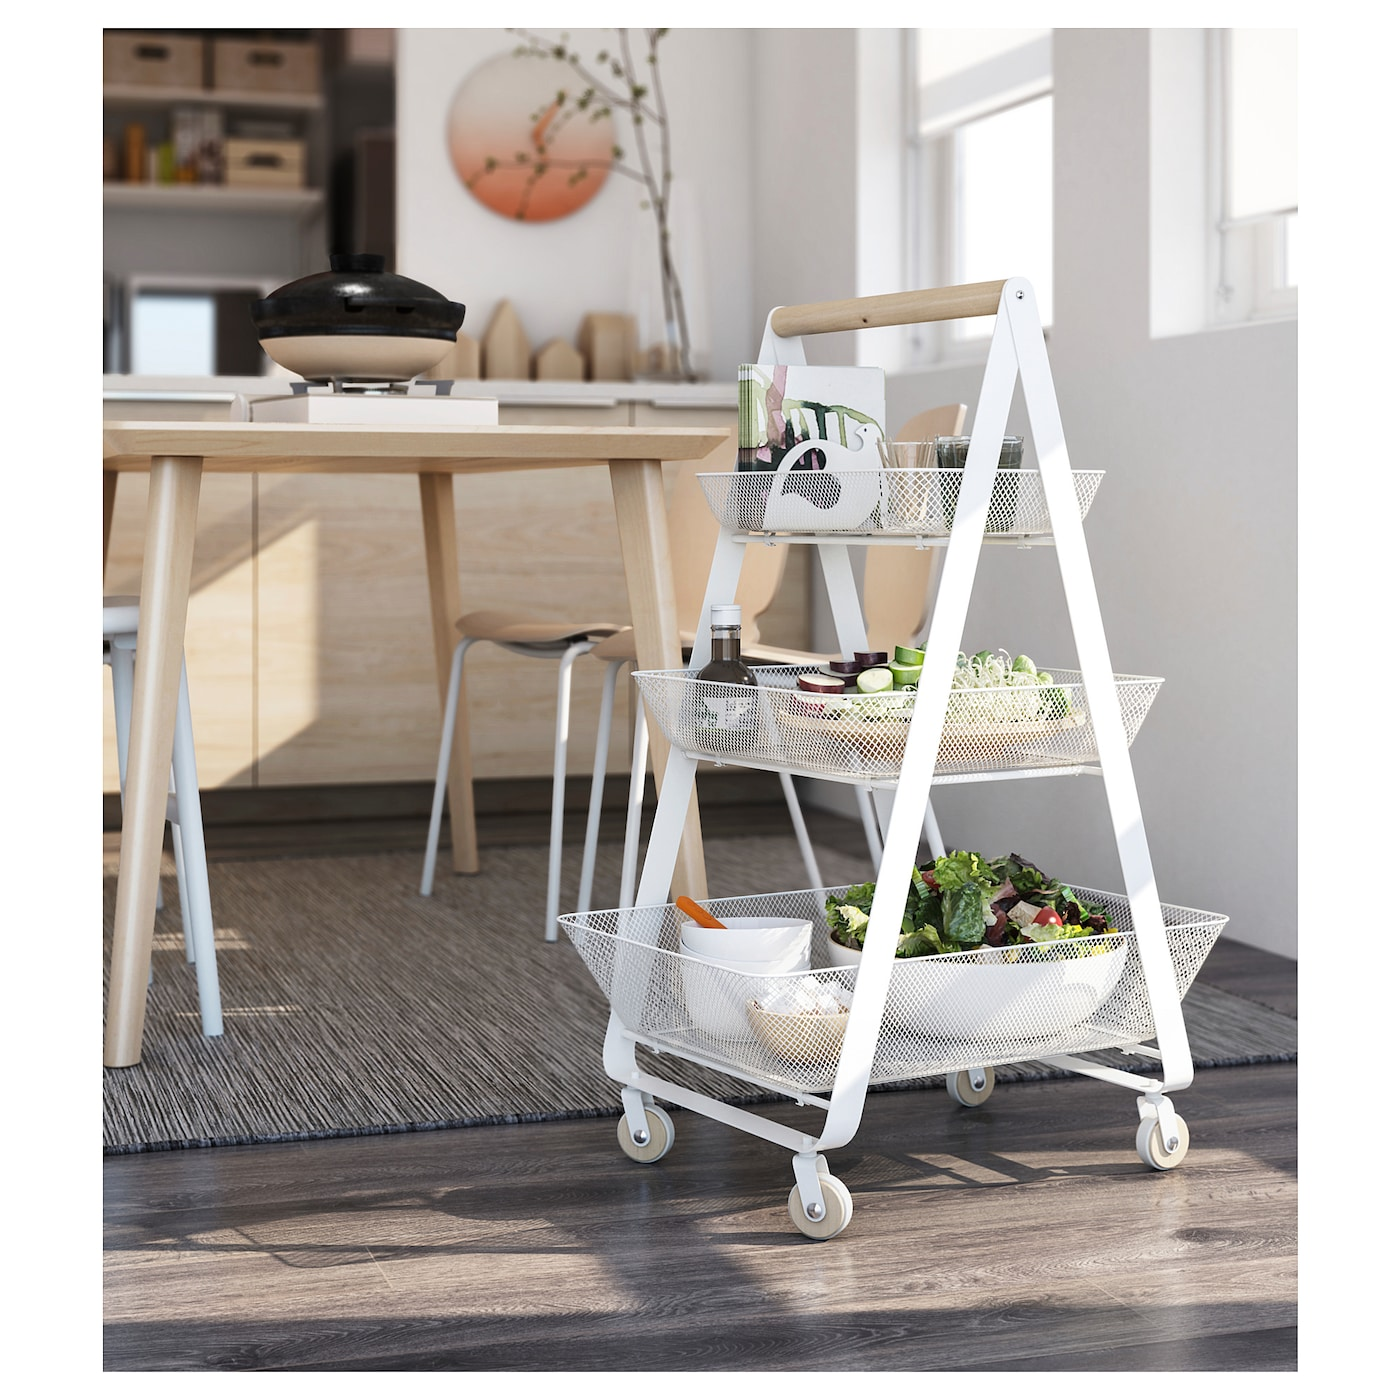 Ikea Risatorp Serving Trolley In White